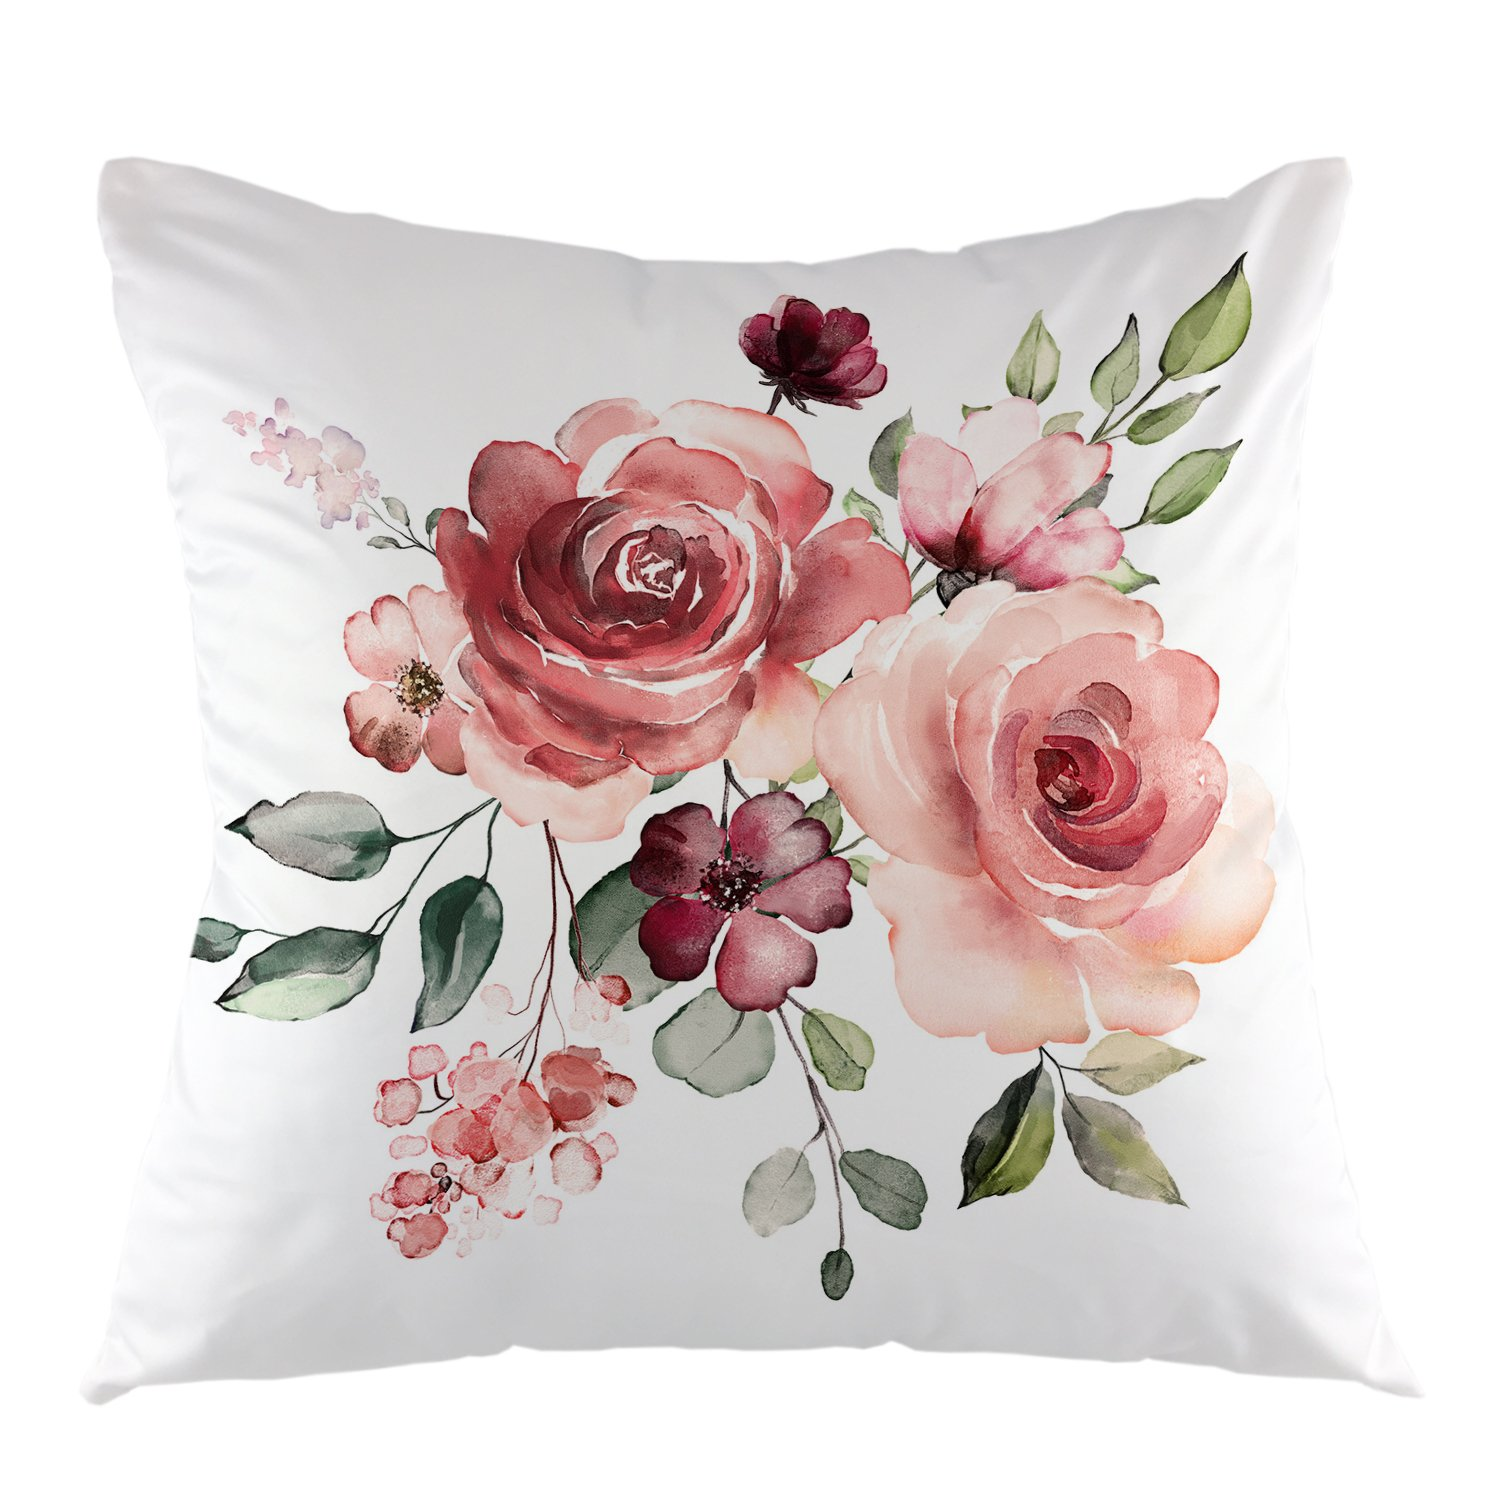 oFloral Flower Throw Pillow Cover Flower Floral Leaf Buds Pillow Case Square Decorative Cushion Cover for Sofa Couch Home Bedroom Indoor Outdoor Pillowcase 18 x 18 Inch Green Pink White